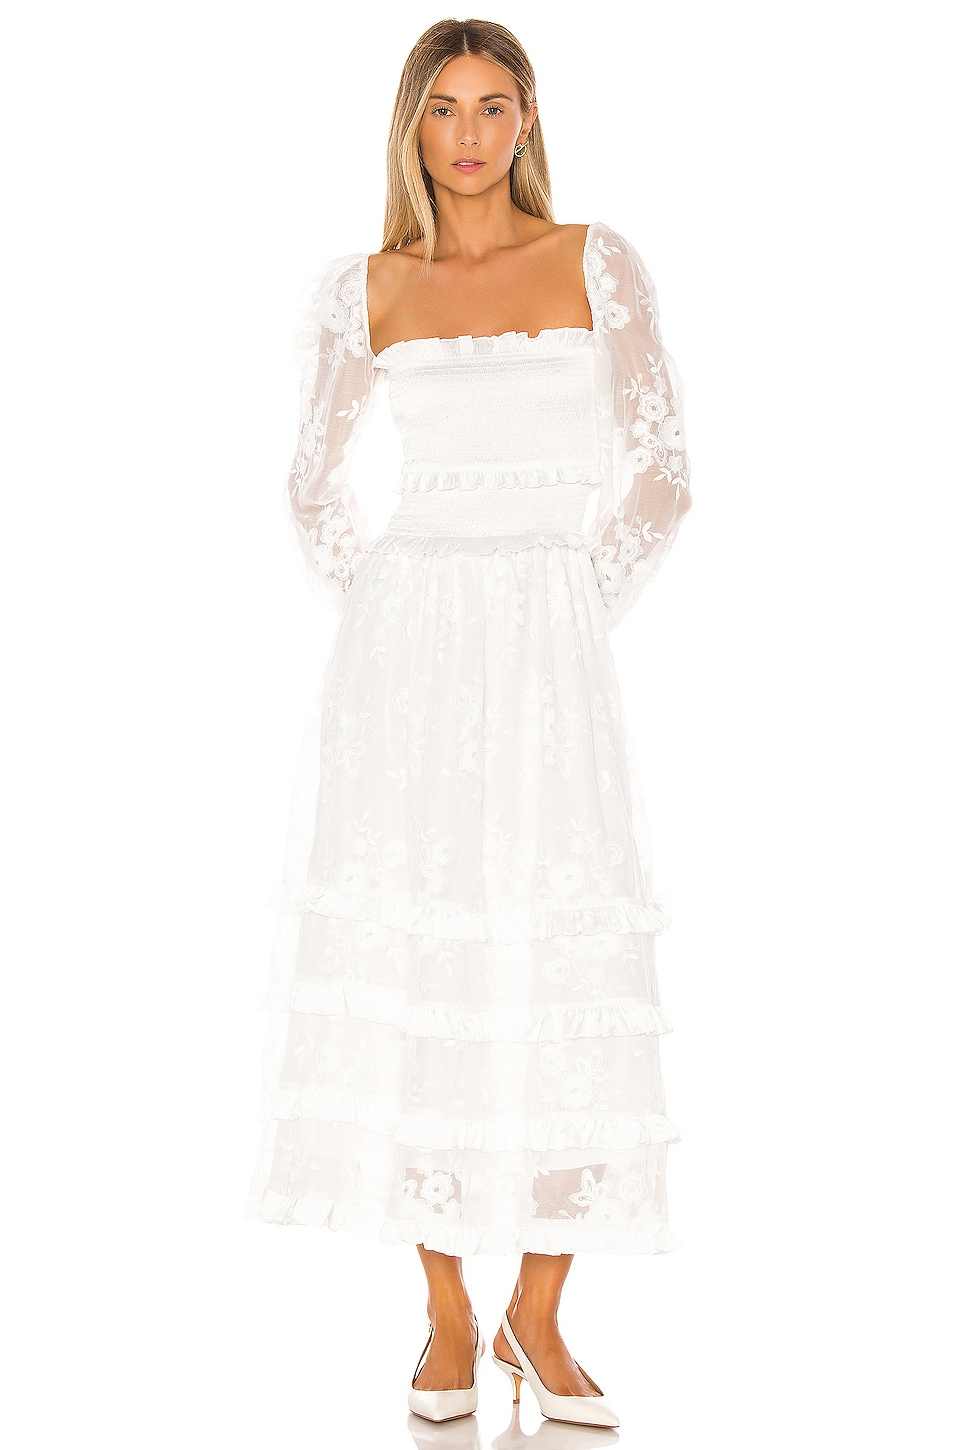 V. Chapman Magnolia Dress in White